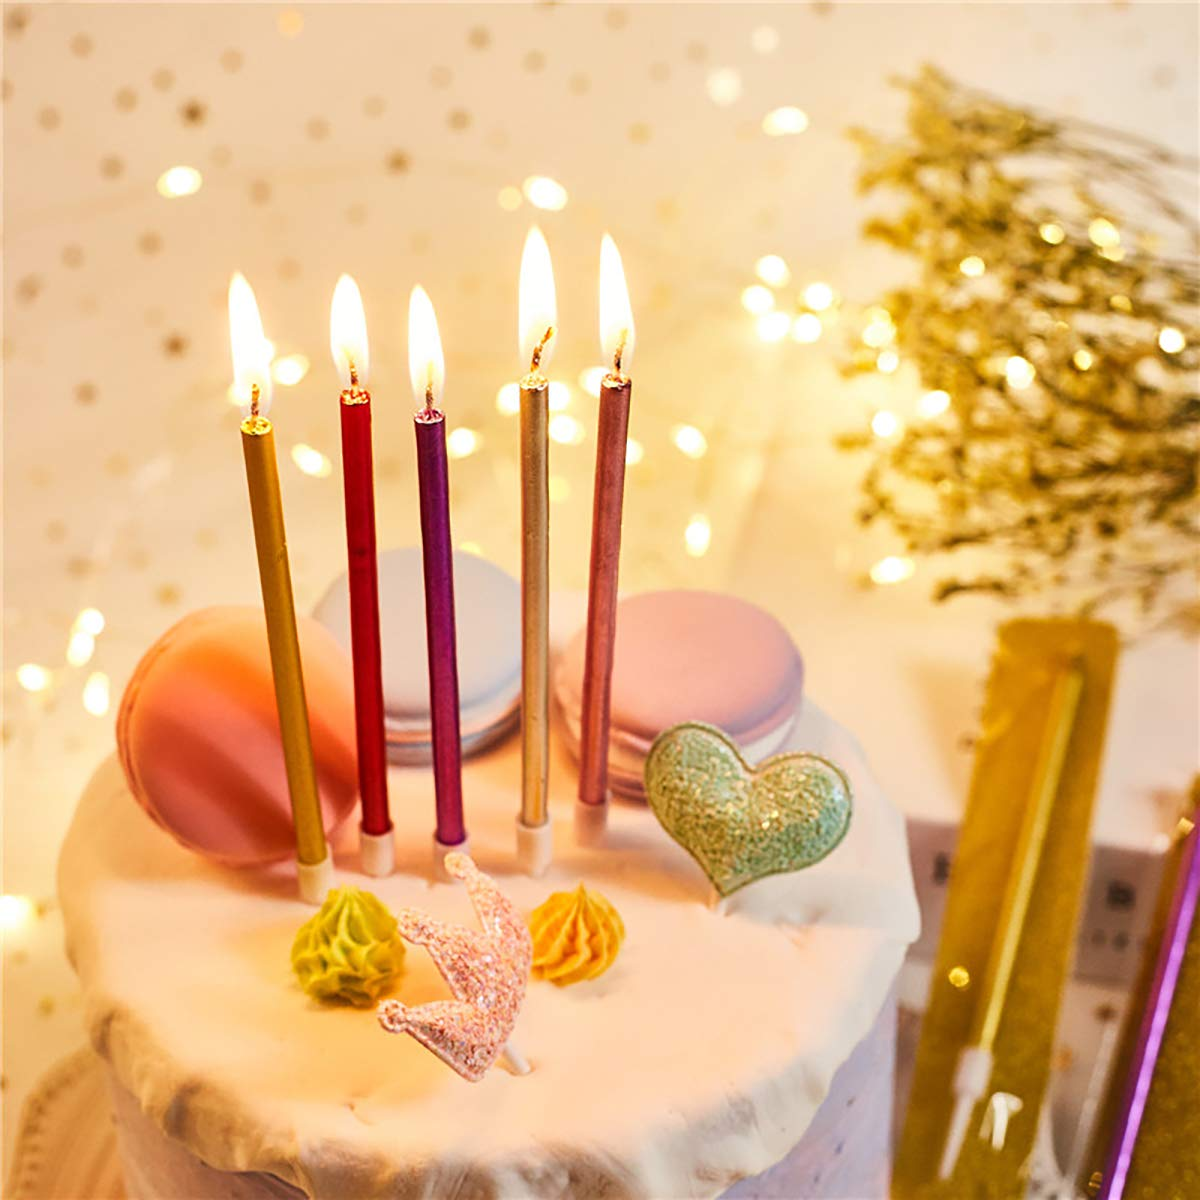 Kissral Birthday Cake Candles Pack of 24 Long Candles Set with Holders for Birthday Wedding Party Cake Decorations Champagne Gold